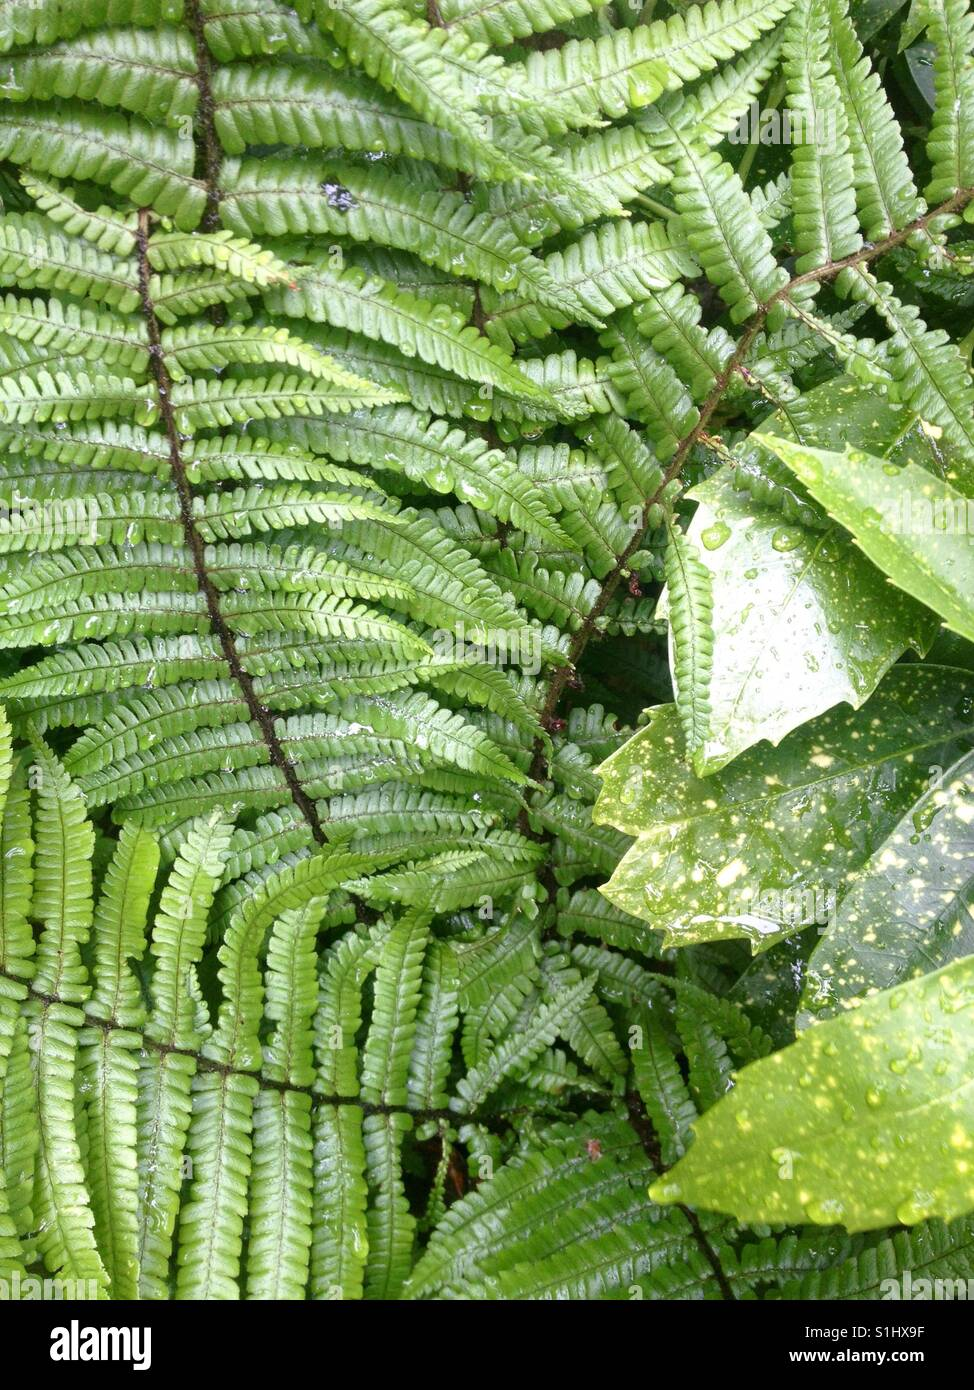 Fern leaves spiralling up and shrub, Stock Photo